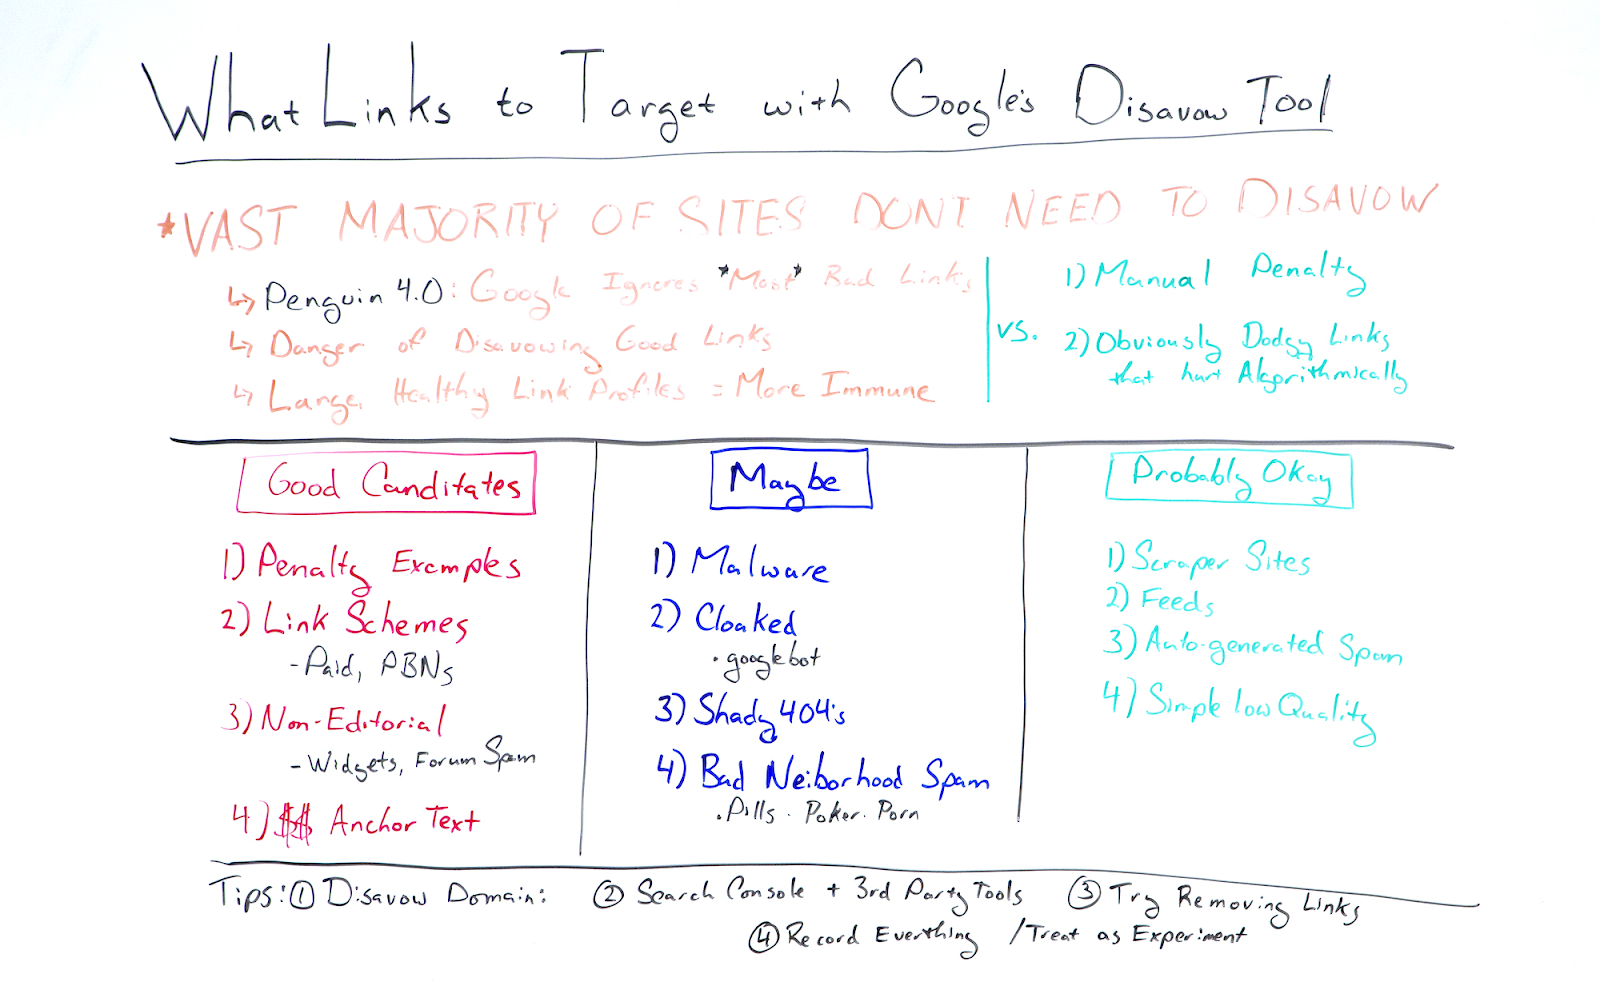 Writing on whiteboard explaining which kinds of links should be targeted with Google's disavow tool.